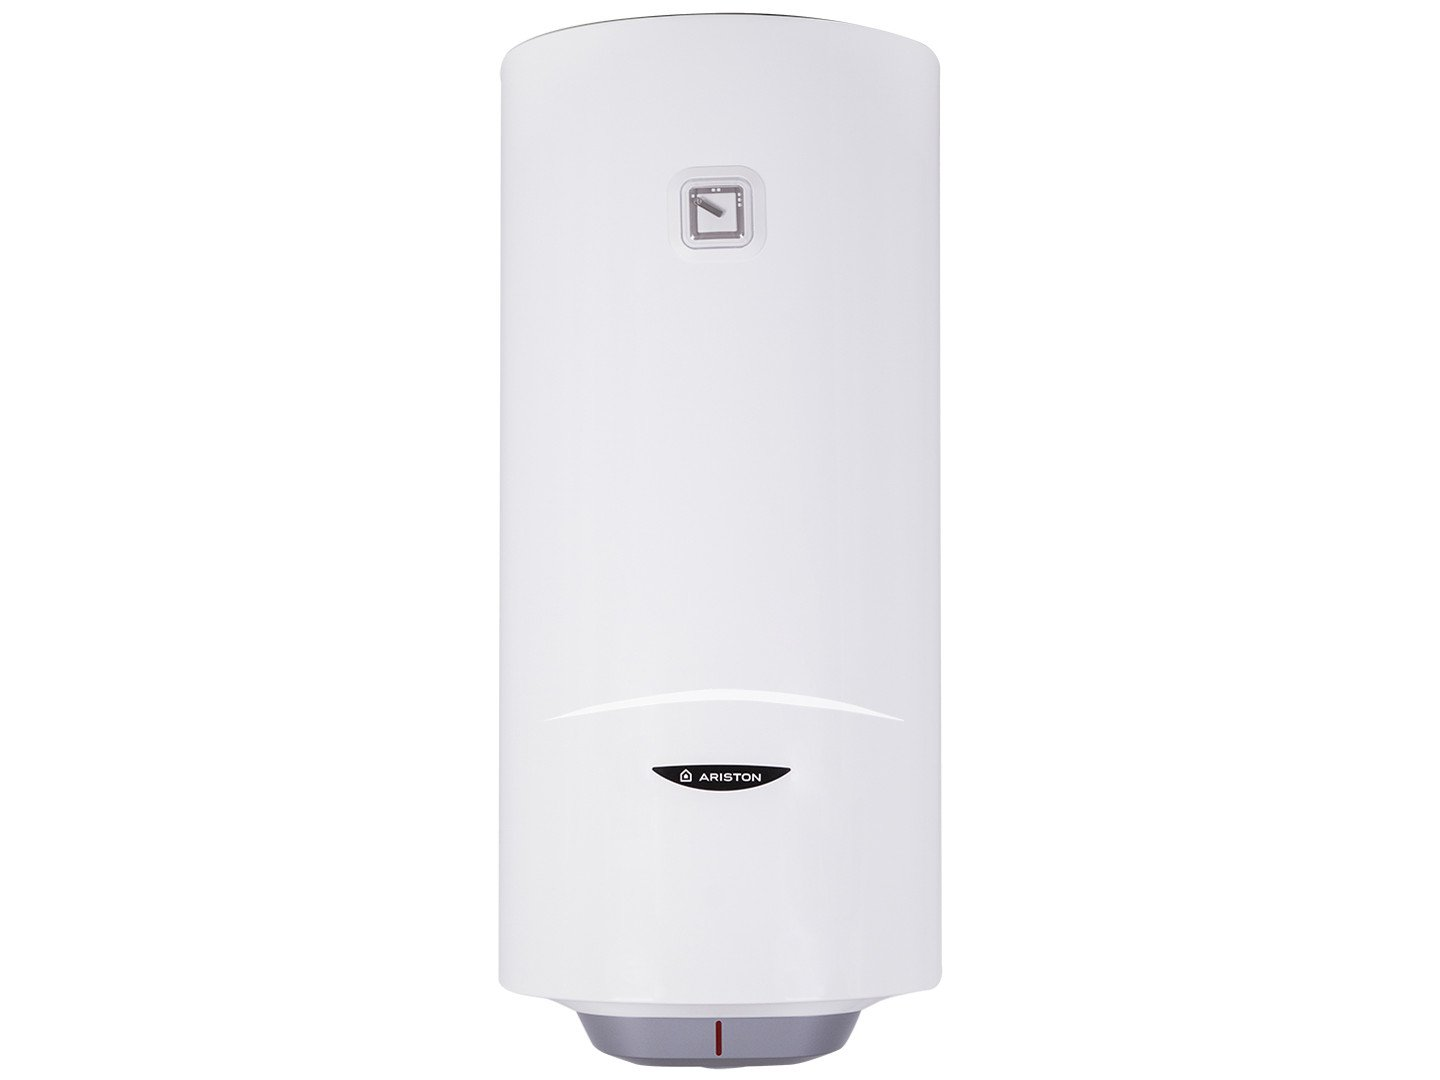 Бойлер Ariston PRO1 R ABS 50 V SLIM